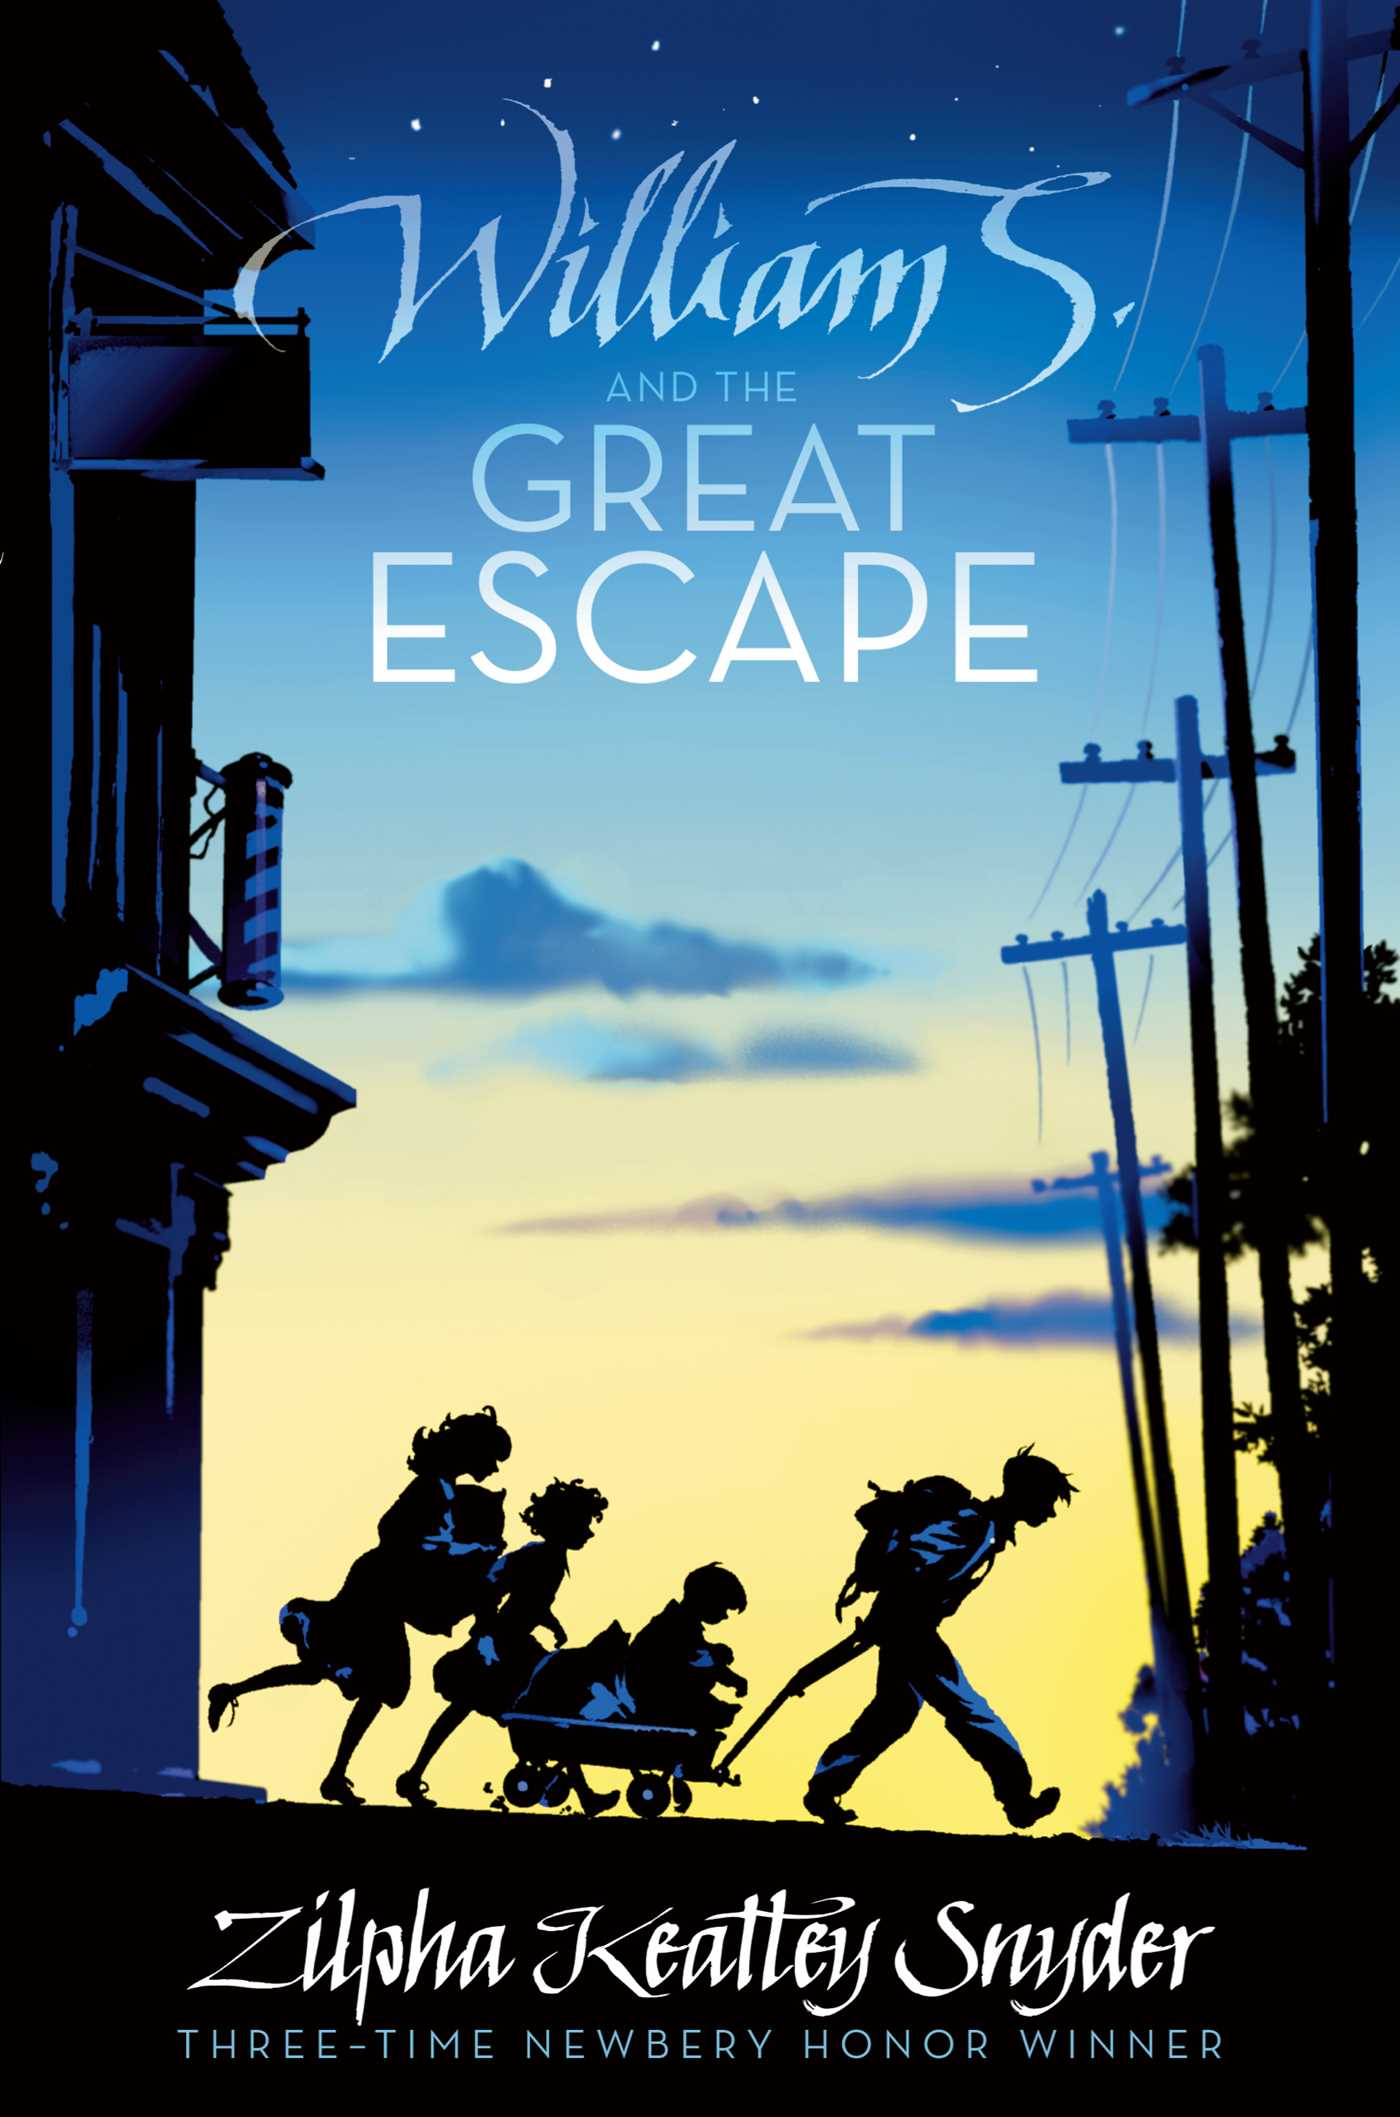 William-s-and-the-great-escape-9781416997436_hr